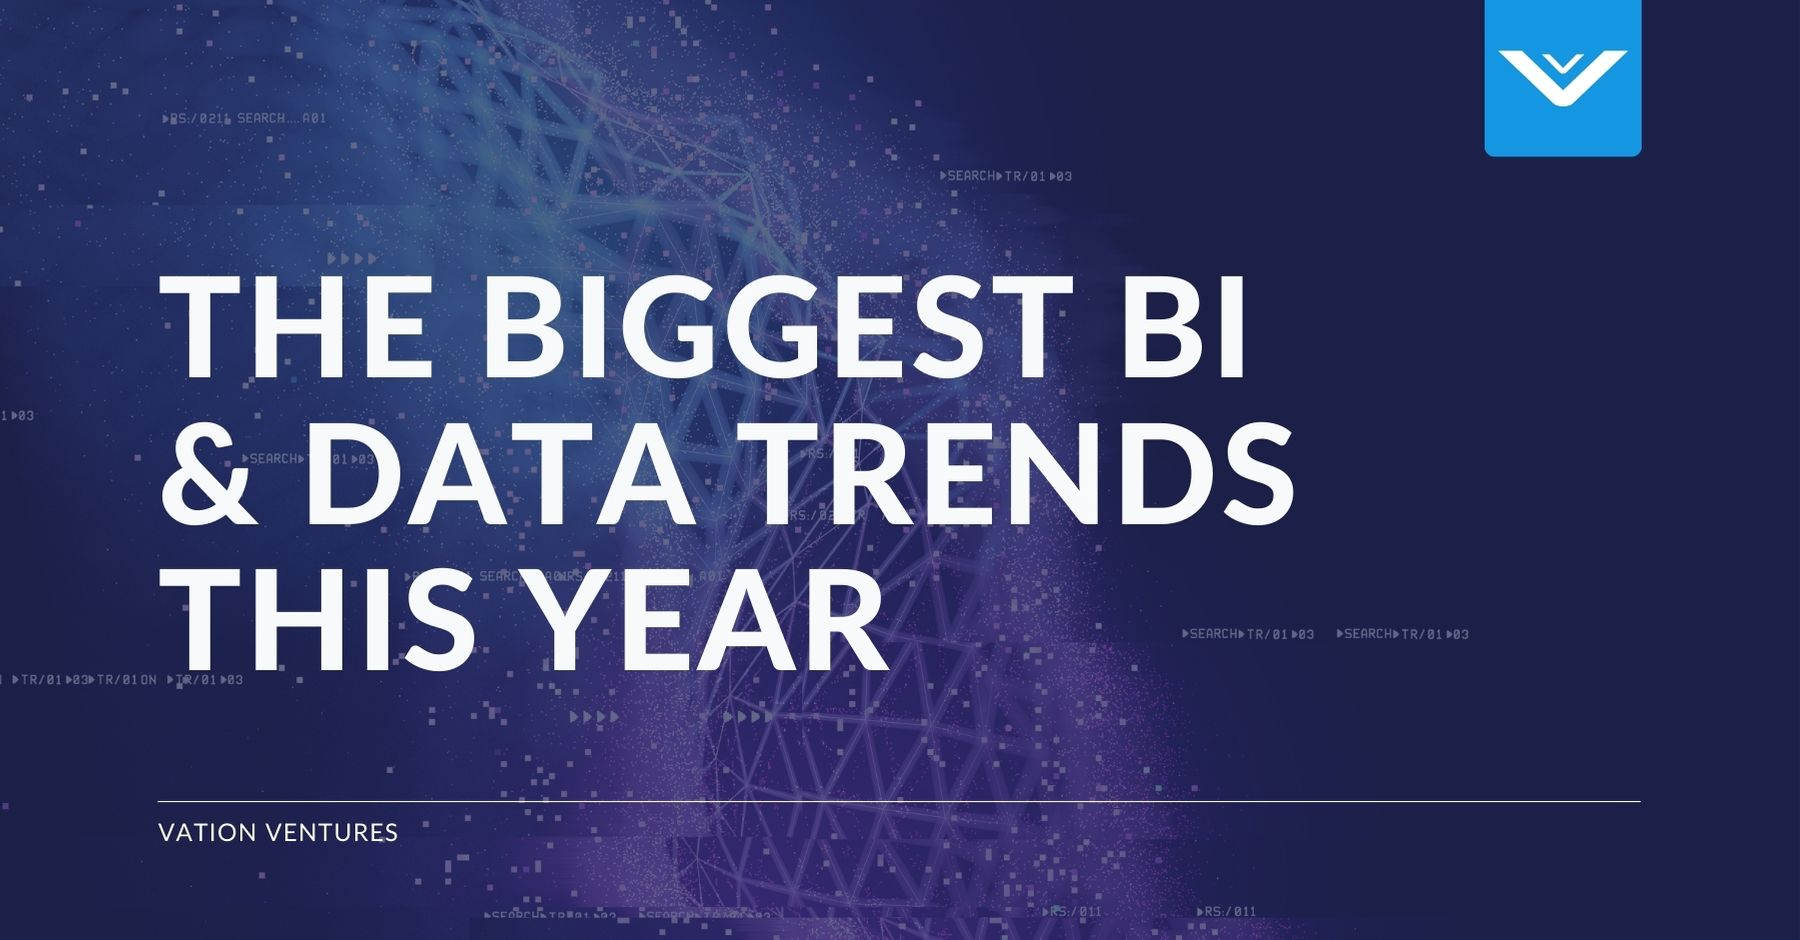 The Biggest BI and Data Trends This Year